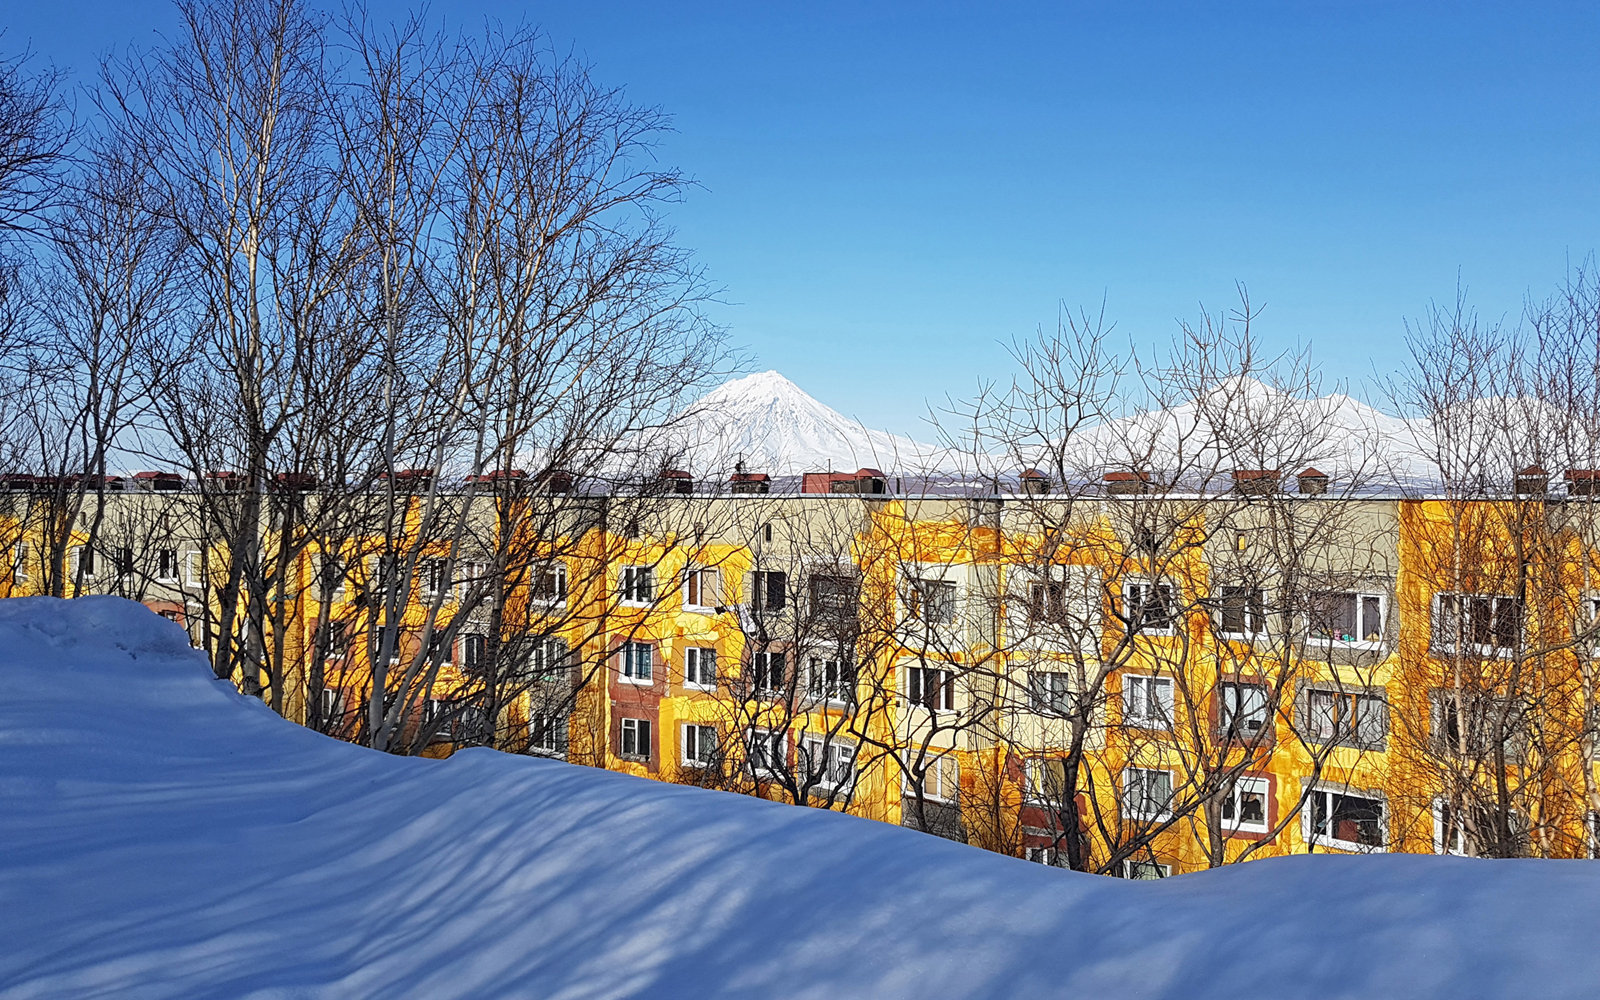 Residential buildings in Petropavlovsk-Kamchatsky